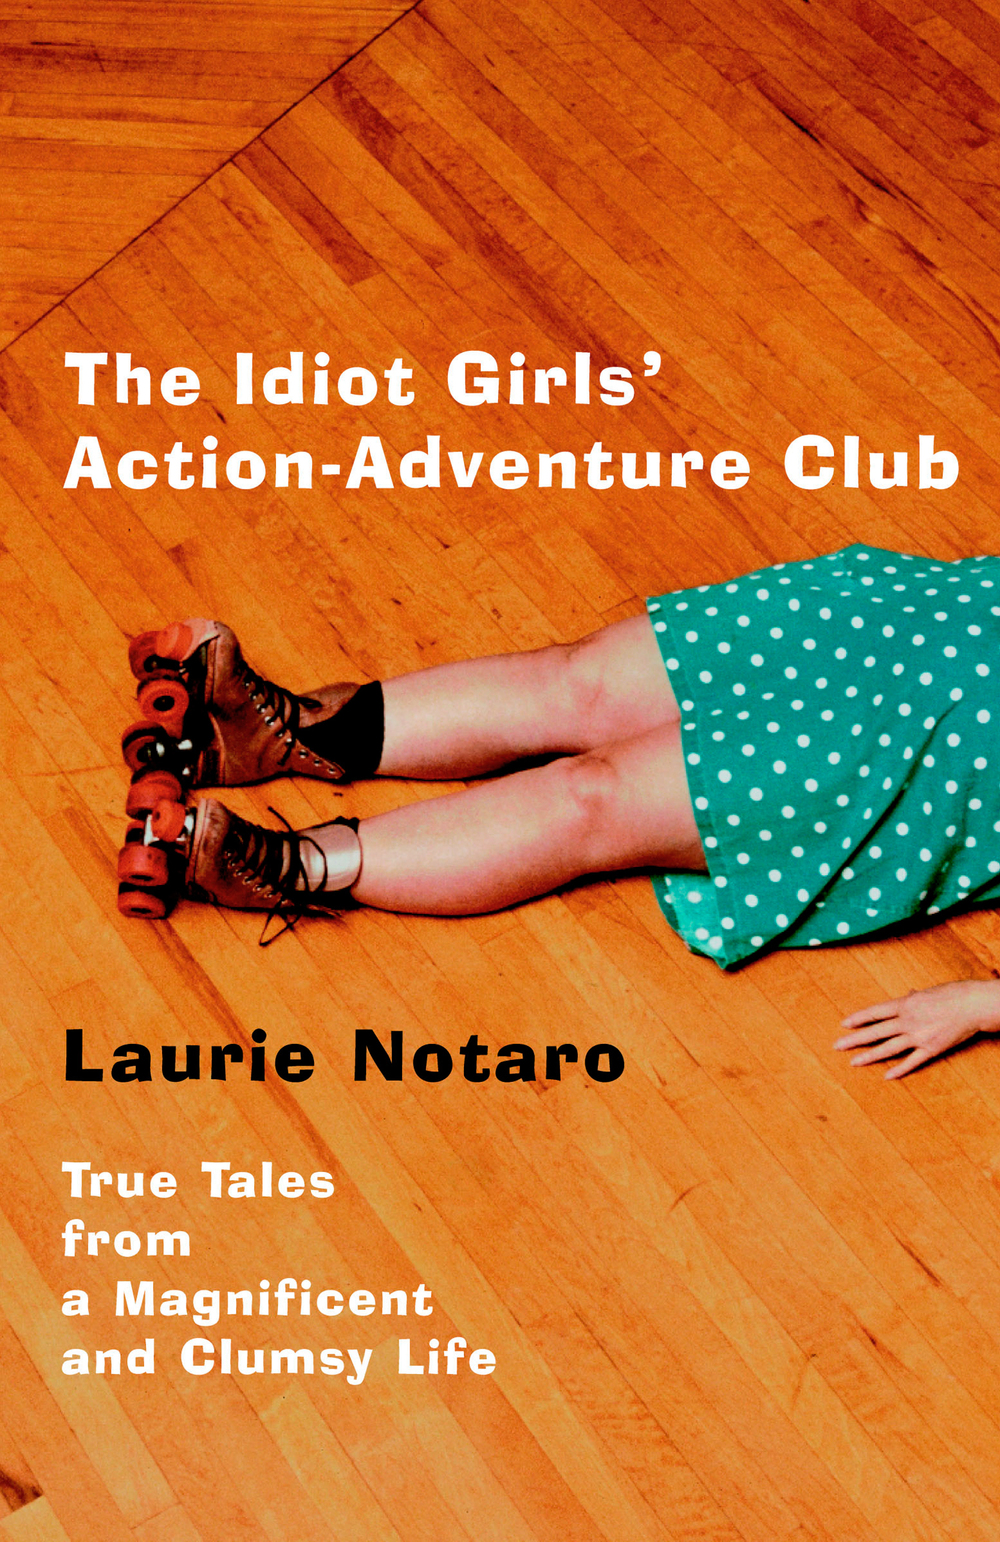 THE-IDIOT-GIRLS-ACTION-ADVENTURE-CLUB-tpb-ss6.jpg